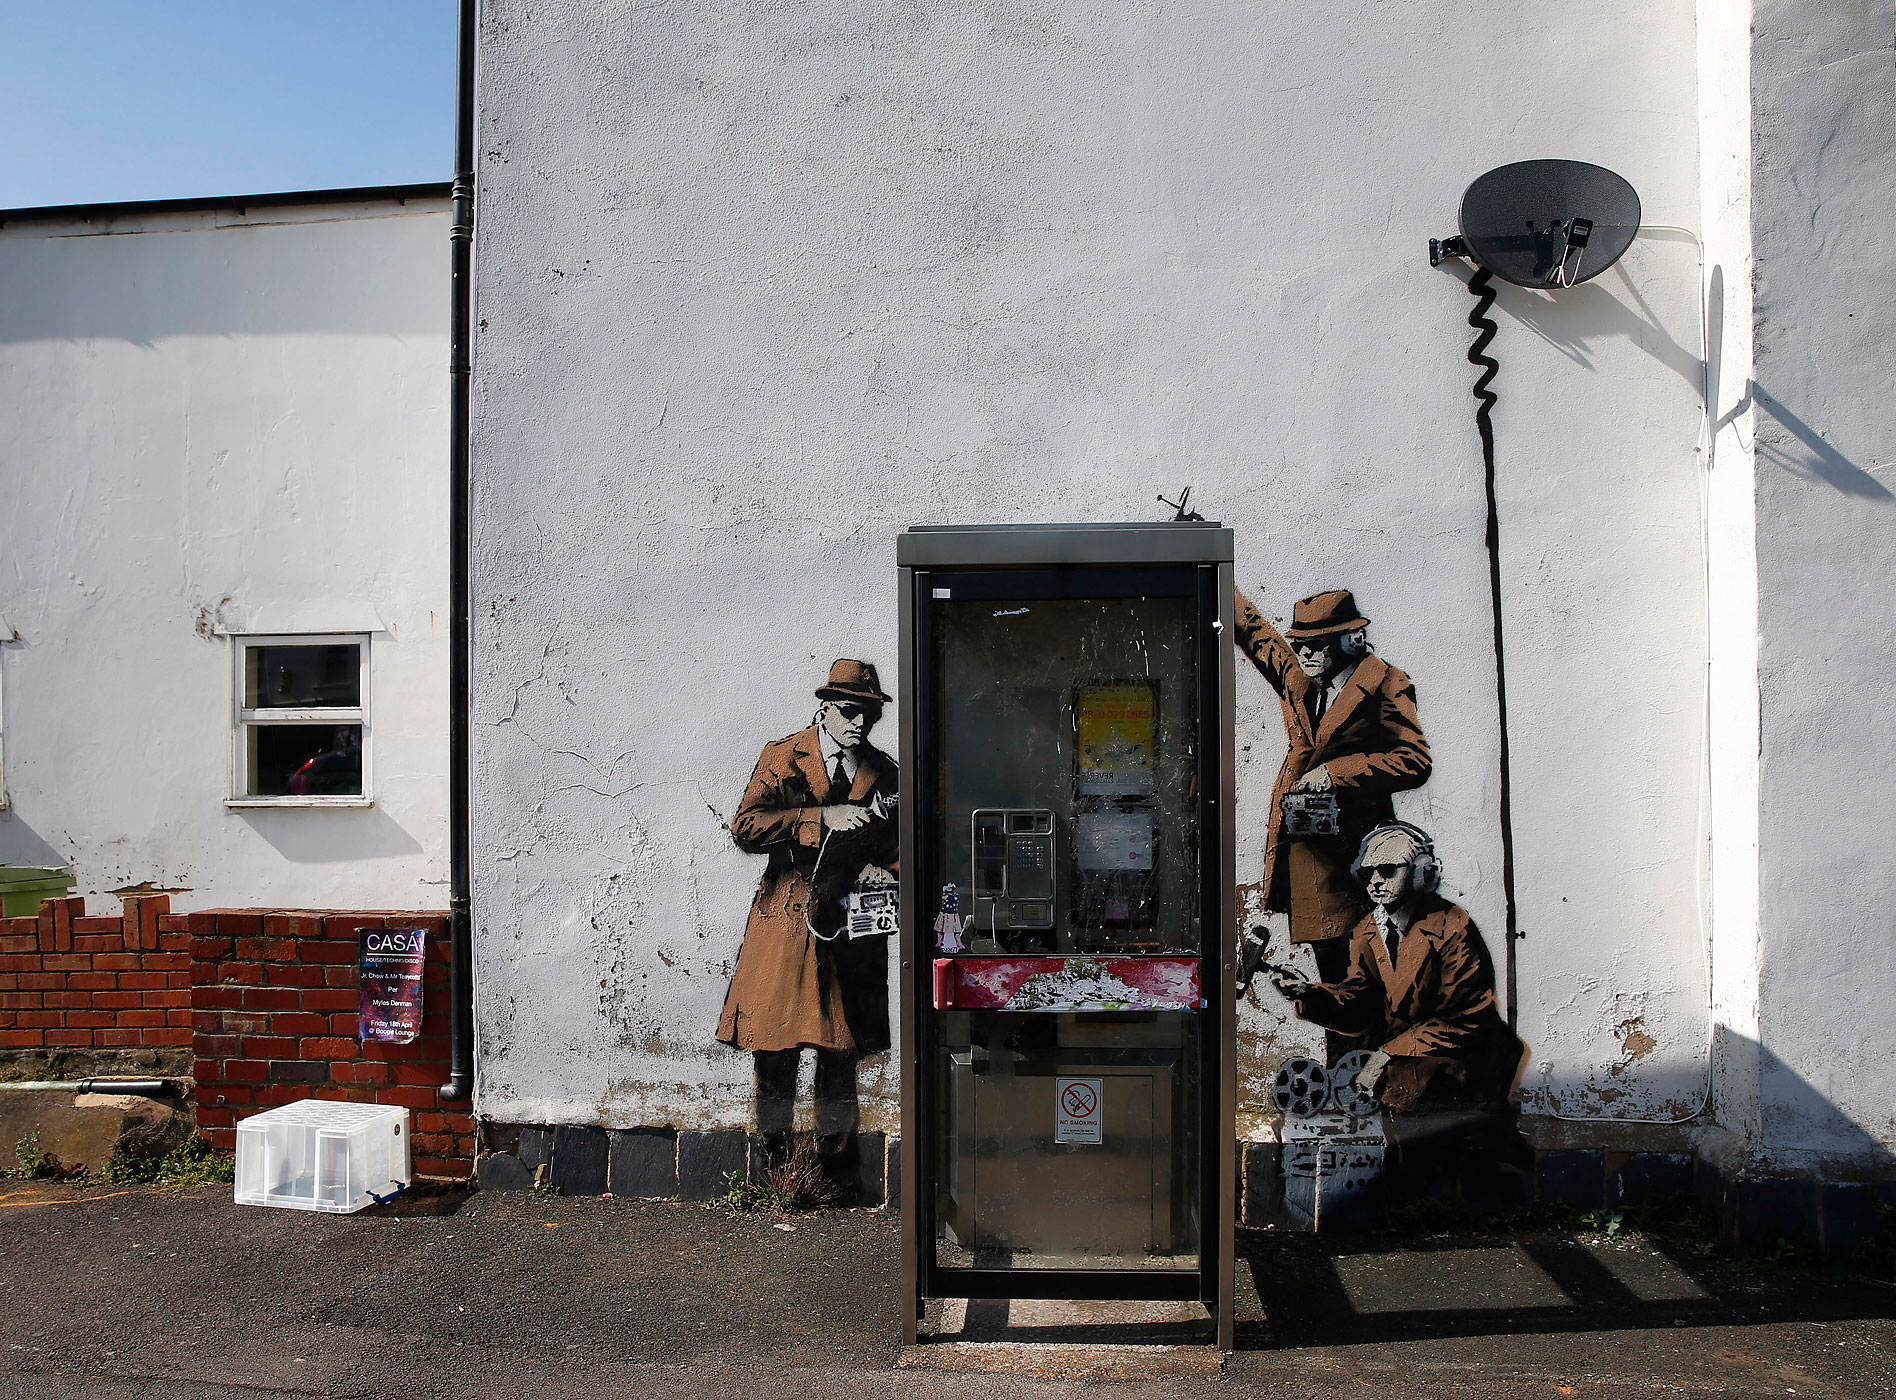 A Banksy is seen near the headquarters of Britain's eavesdropping agency, Government Communications Headquarters, known as GCHQ, in Cheltenham, England on April 16, 2014.